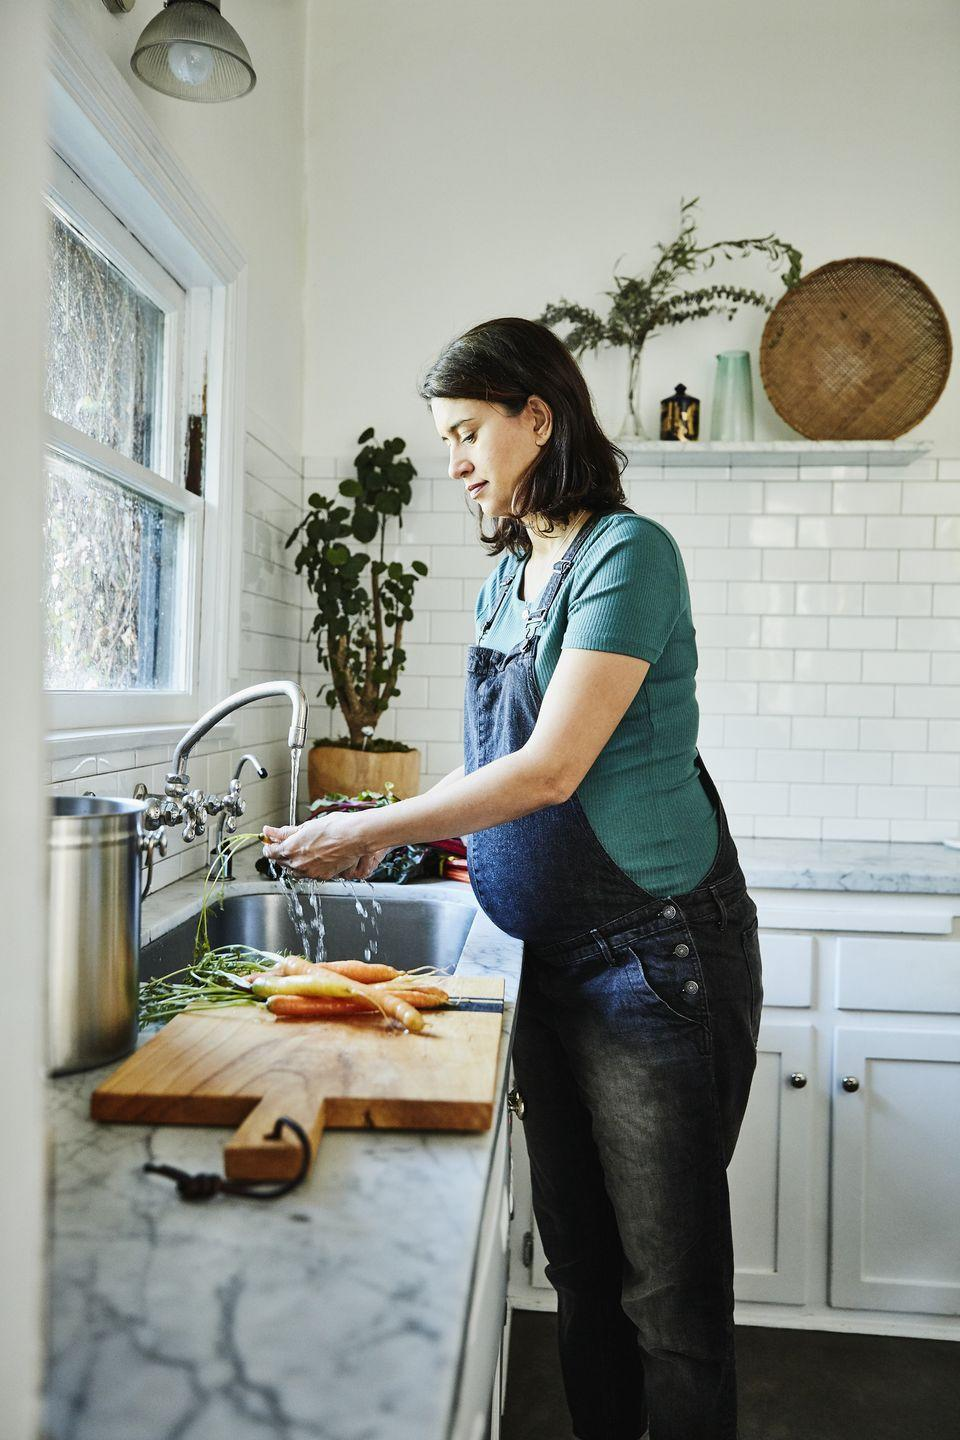 """<p>Time spent in the kitchen isn't just about cooking: cleaning up after a homemade meal can feel exhausting. That's why almost every chef recommended cleaning as you go, which might feel overwhelming, but is actually easier than it seems and worth it in the end. """"I always have a 'trash bowl' nearby while cooking and prepping ingredients,"""" says Sidorenkov. """"Having a small bowl near your work station or cutting board designated for scraps or other disposable items saves you a trip to the trash, improves workflow, and helps you cook more efficiently."""" </p><p>Sidorenkov also recommends ensuring every tool and gadget you use is dishwasher-safe. """"After cooking a long meal, the last thing I want to do is hand wash decorative accessories I used while cooking,"""" she explains. """"Being able to just throw everything in the dishwasher is such a nice feeling and saves me a ton of time! I really like to have real kitchen tools that prioritize utility and not decoration."""" </p>"""